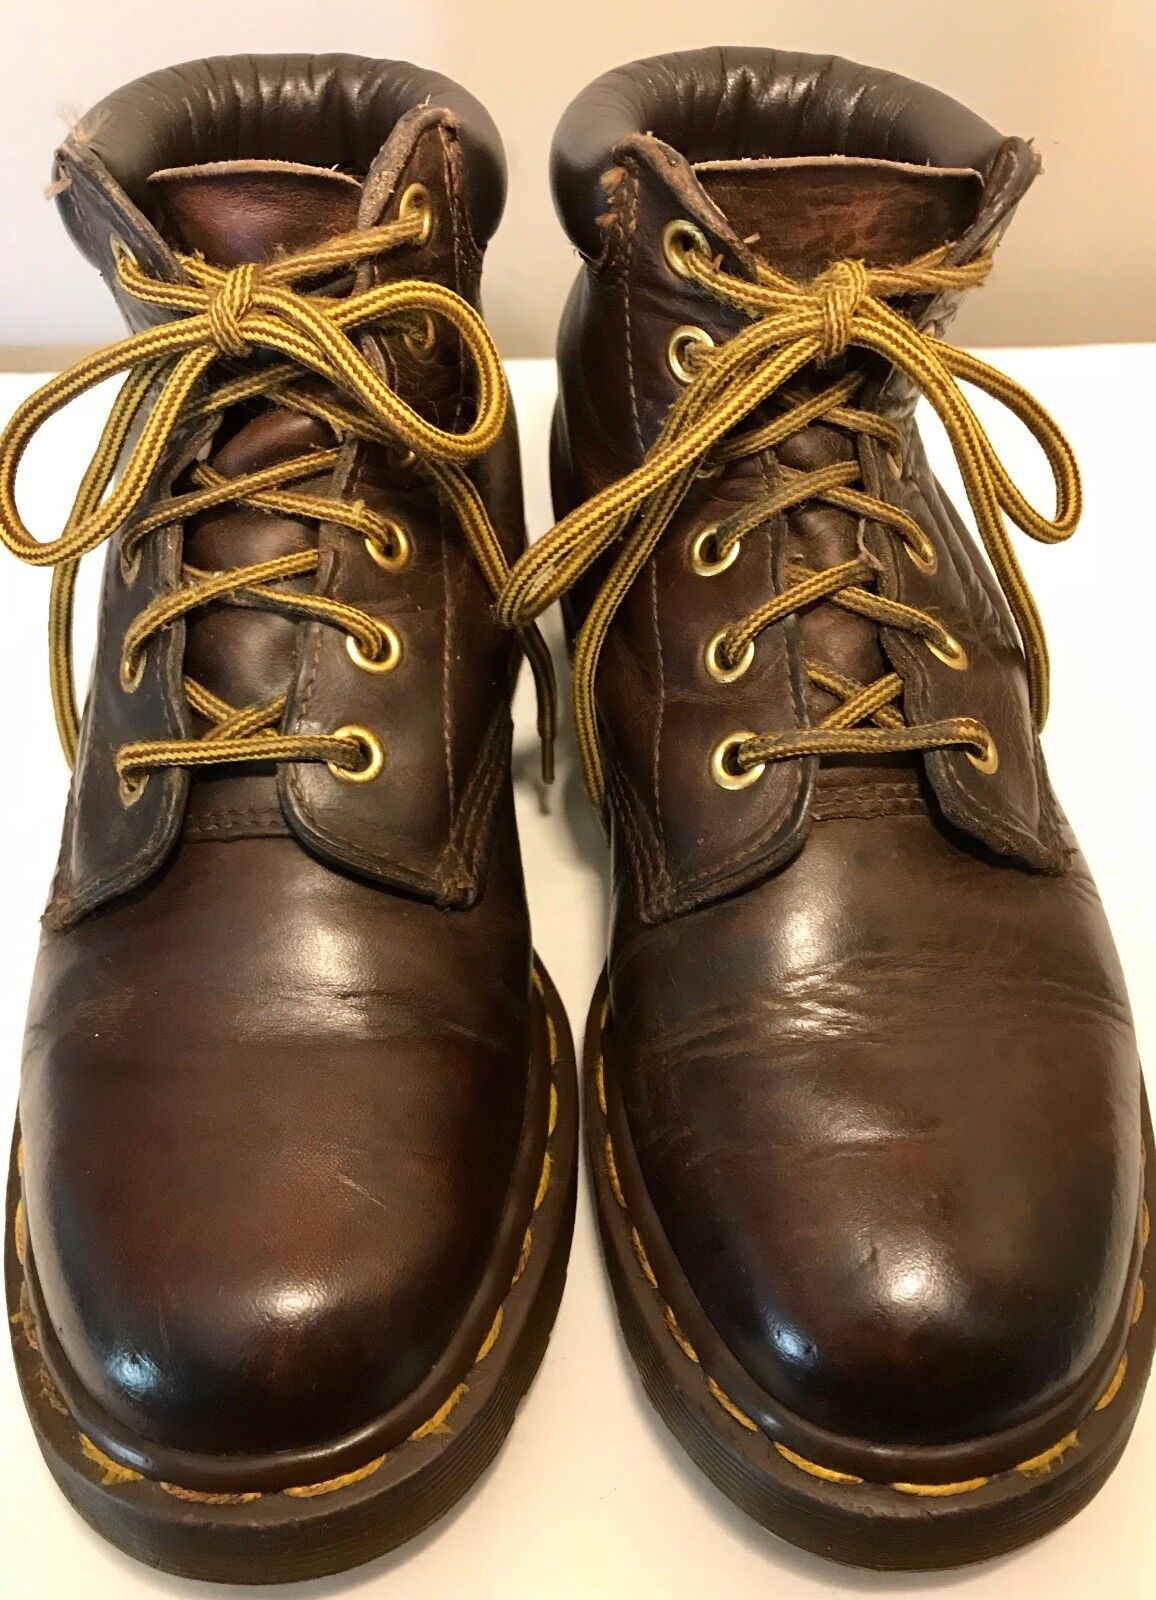 DOC MARTENS Air Wair 939 Ankle Boots Womens 5 US Brown Leather Lace Up